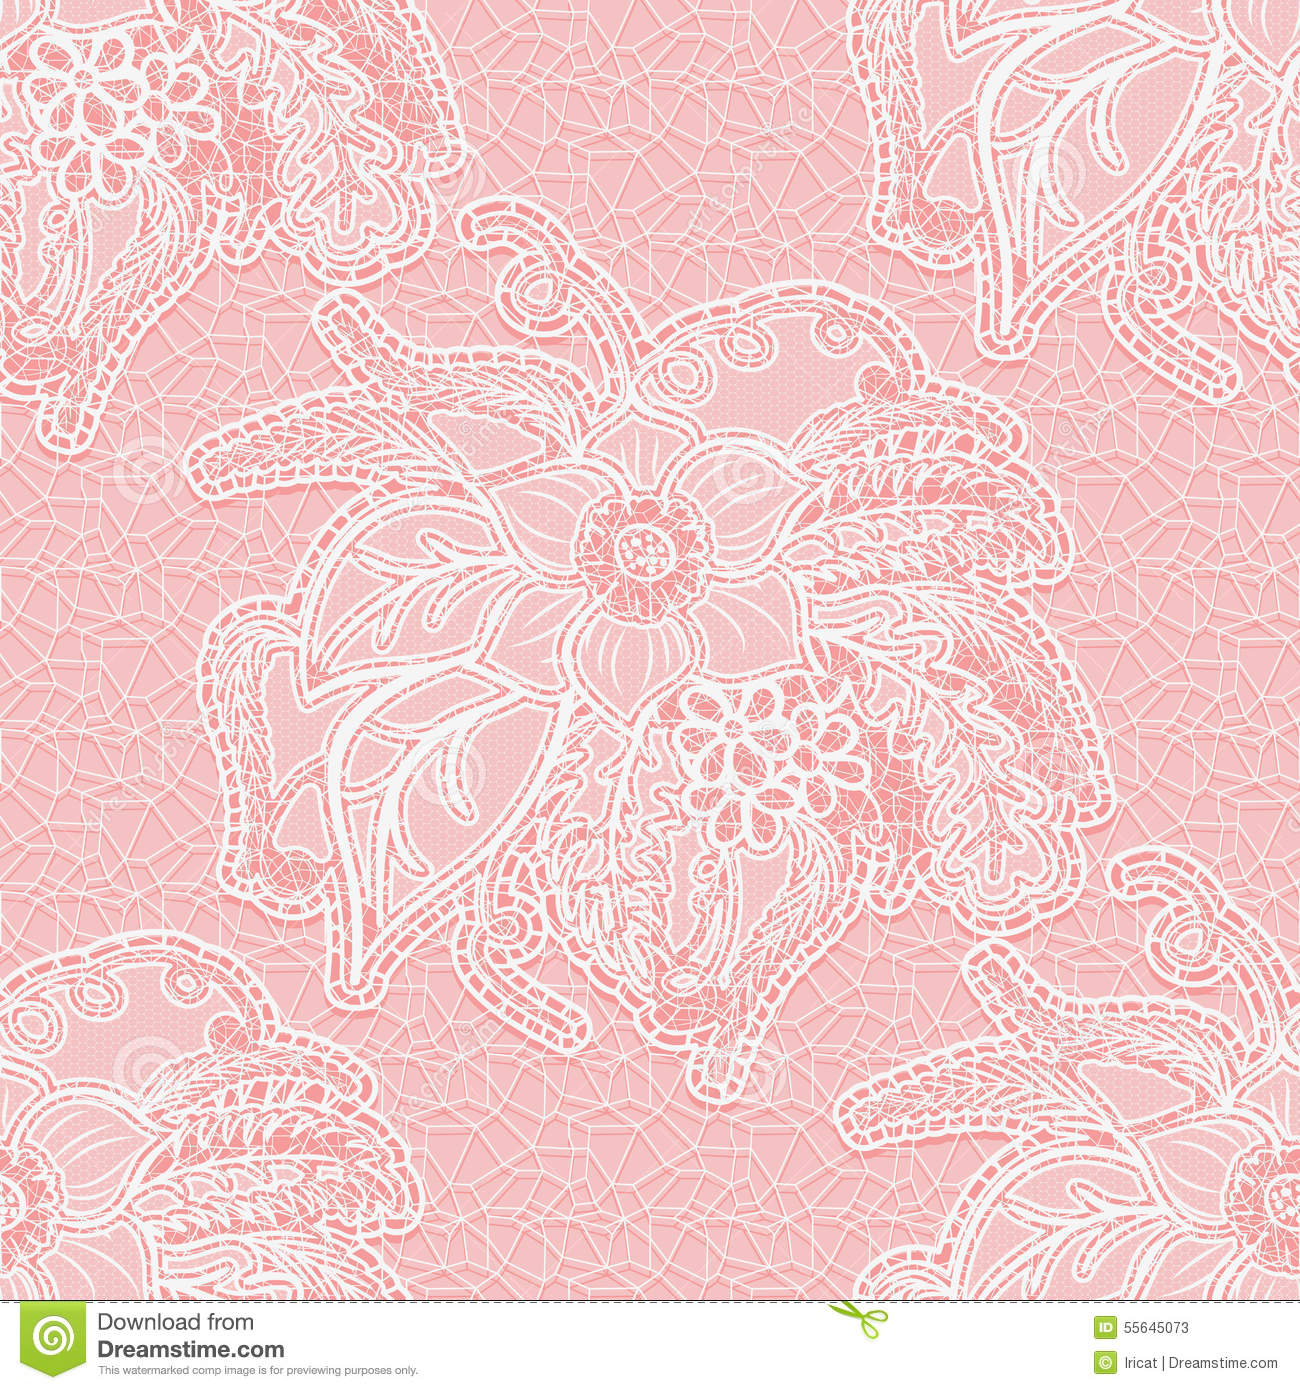 Seamless White Lace Fabric On A Pink Background. Large Floral ...